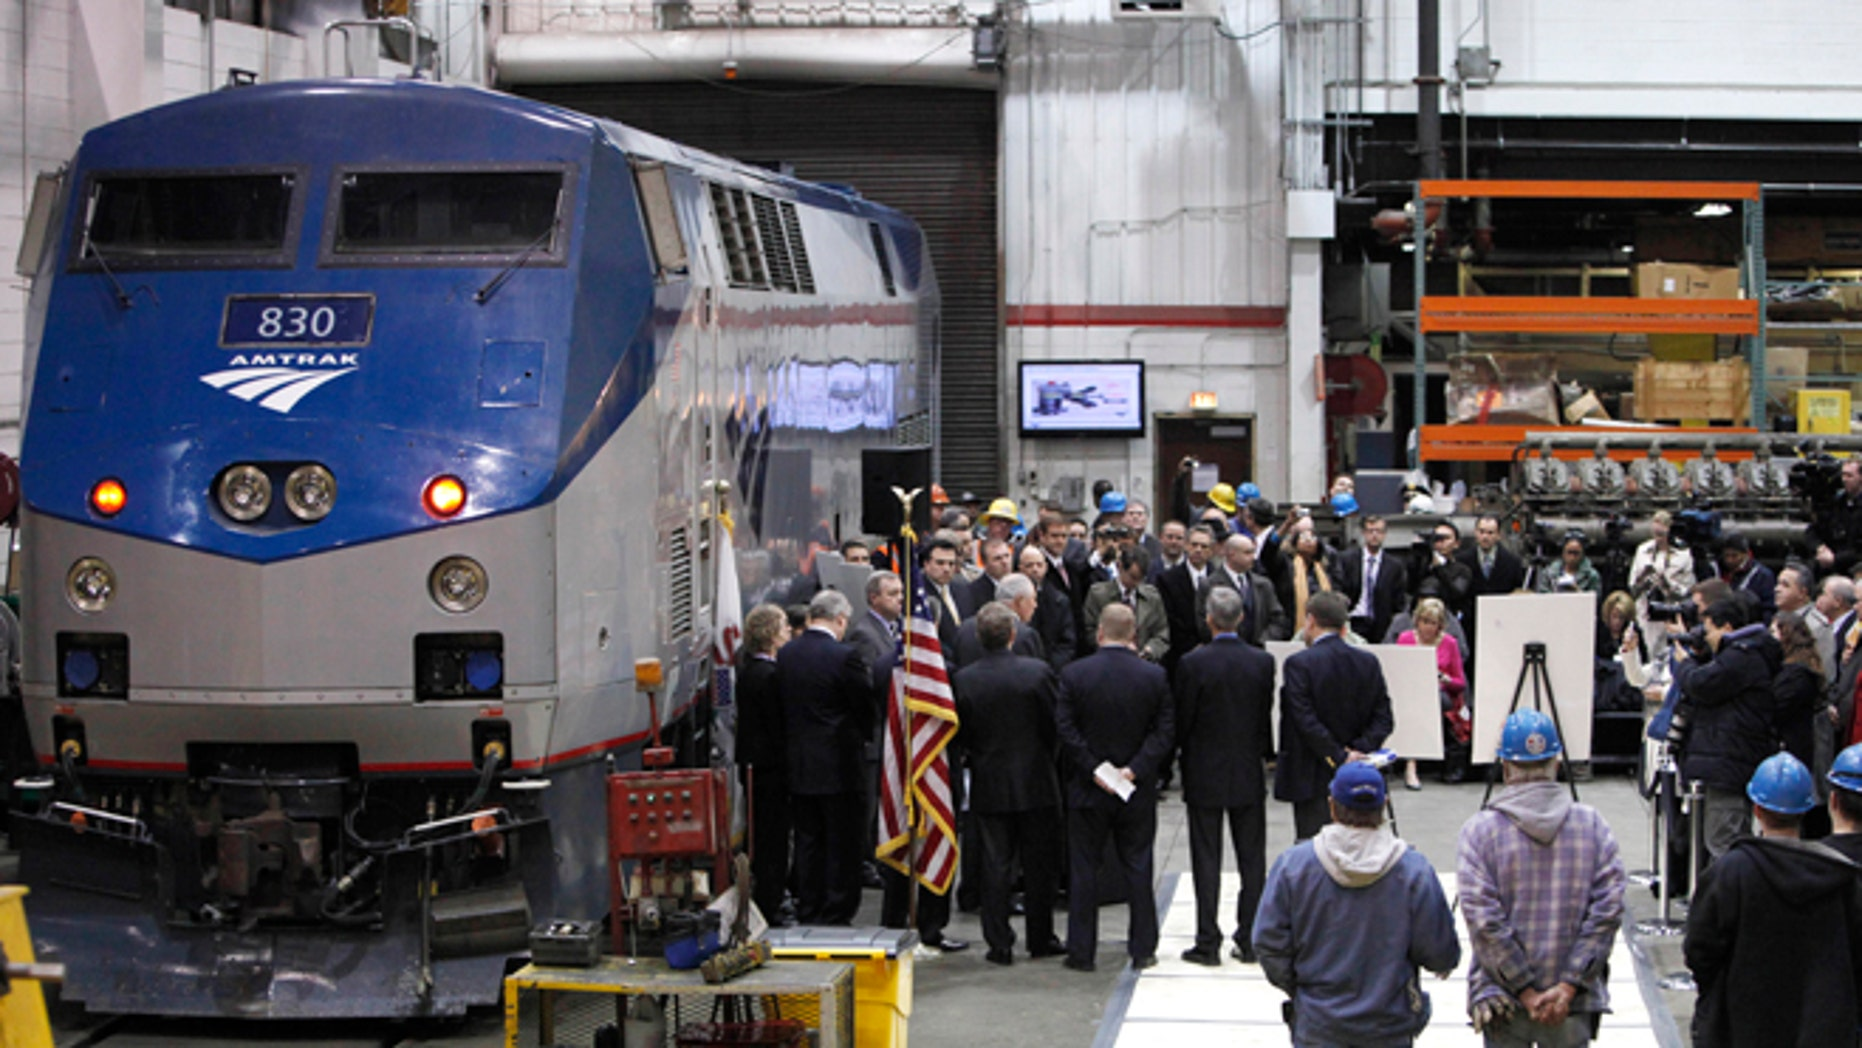 March 22, 2011: In this file photo, Illinois Gov. Pat Quinn and U.S. Sen. Dick Durbin are joined by state and local officials as they announce the next phase of high-speed rail construction during a news conference at an Amtrak maintenance building in Chicago.